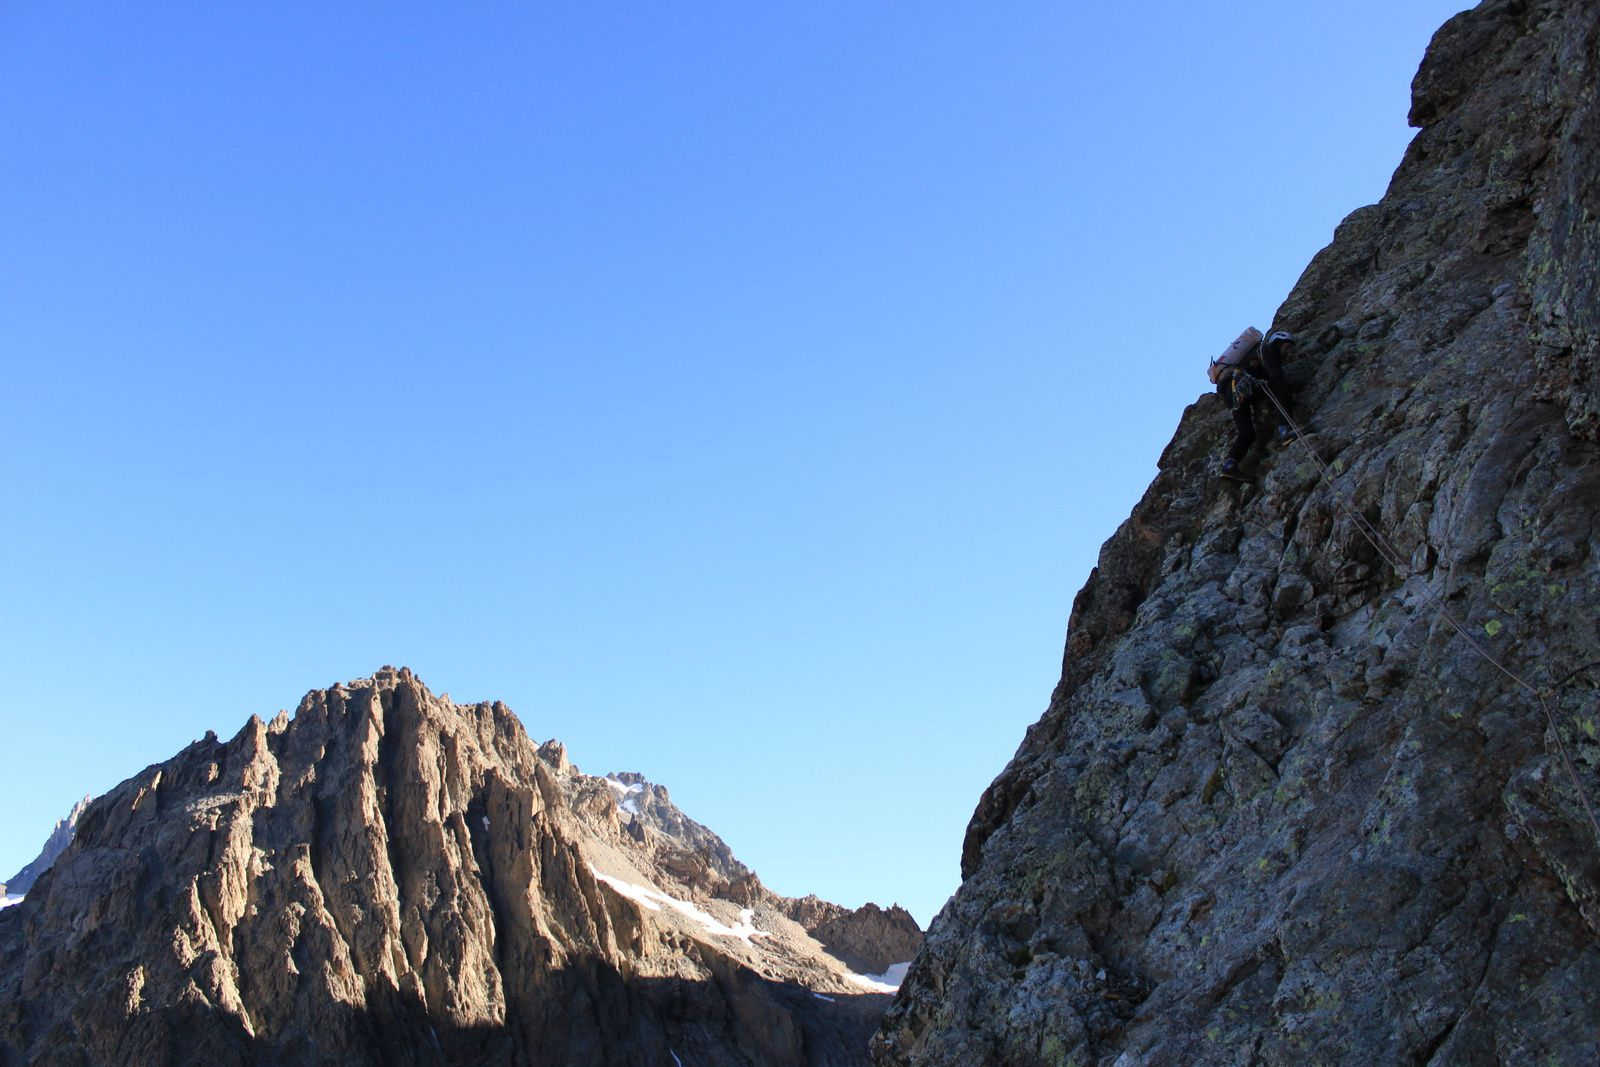 Pilier diagonal, Ailefroide Occidentale 3954m.